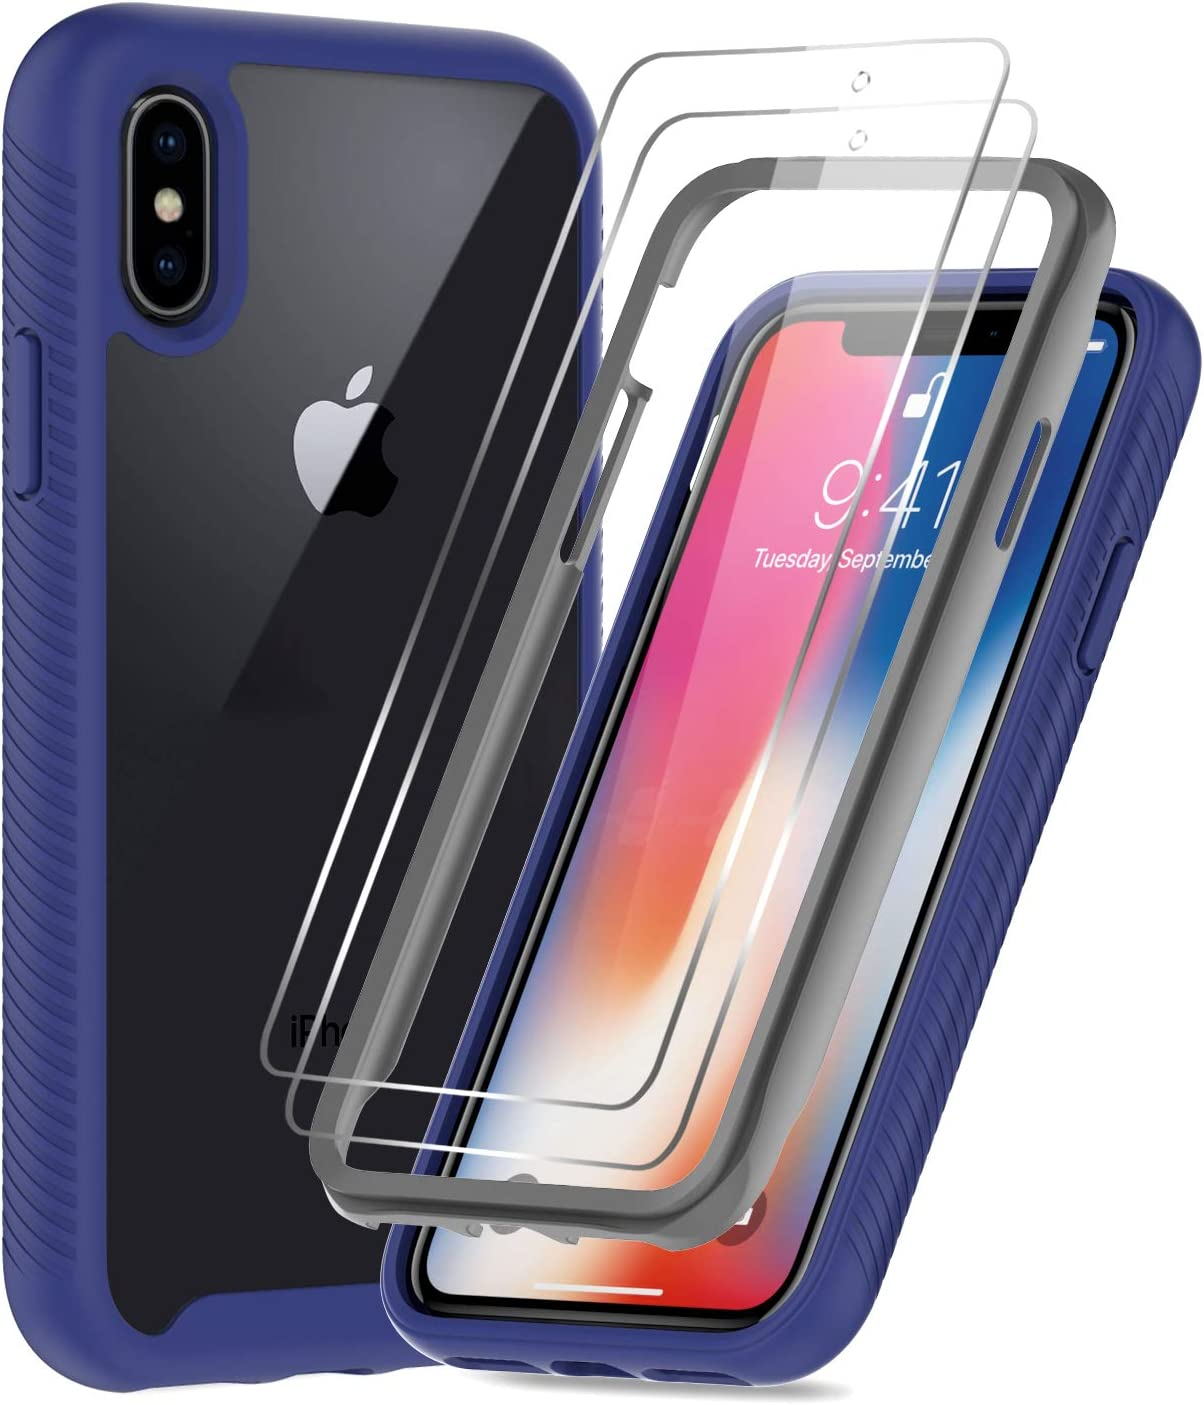 iPhone X Case, iPhone Xs Case with 2 Tempered Glass Screen Protector, LeYi Full-Body Shockproof Rugged Hybrid Bumper Heavy Duty Protective Phone Cover Cases for Apple iPhone X/iPhone Xs, Clear/Blue